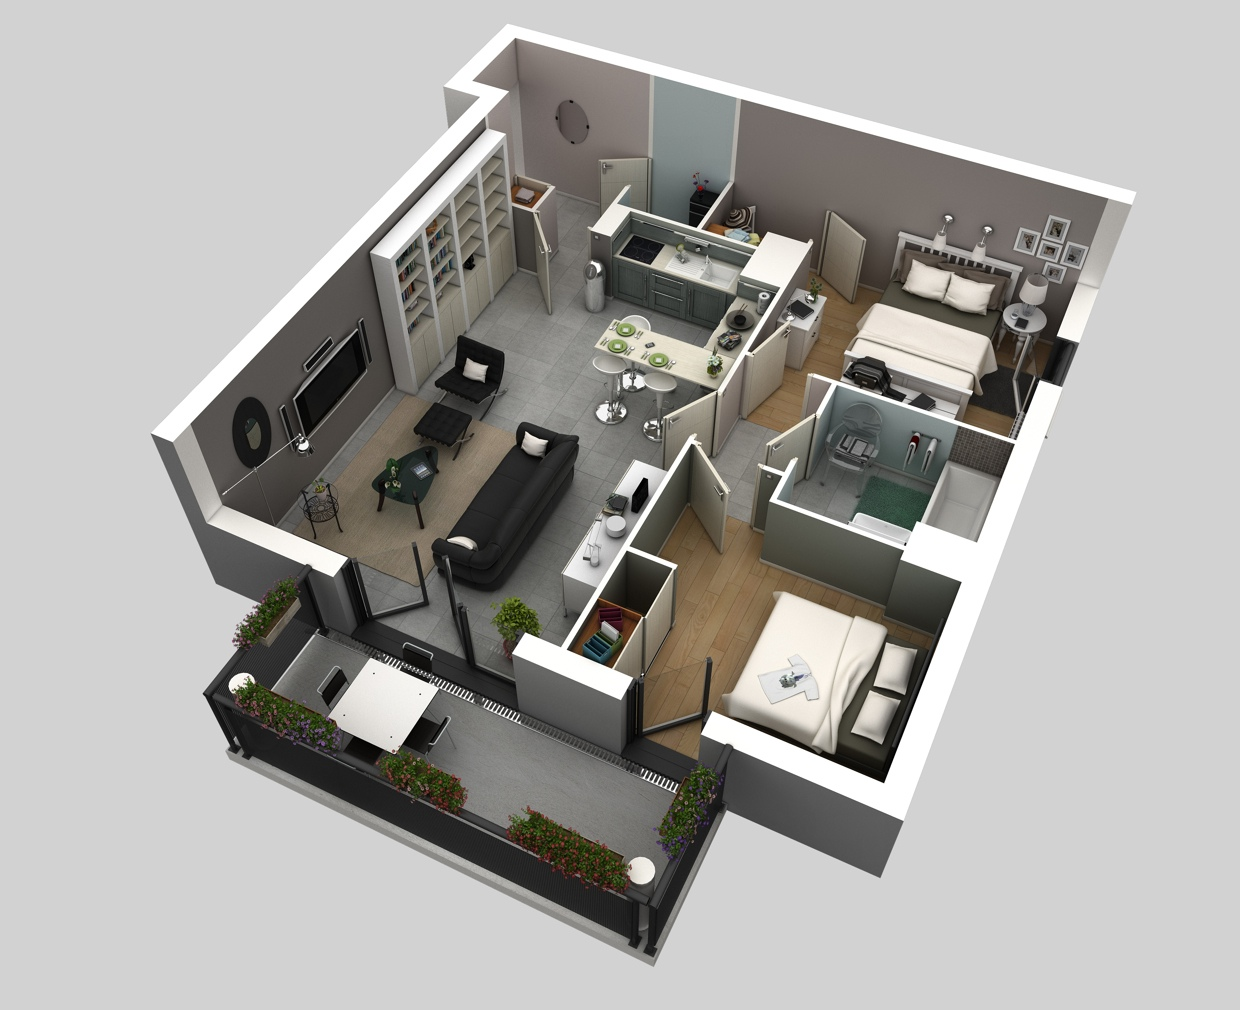 2 Bedroom Modern House Plans 50 3d Floor Plans Lay Out Designs For 2 Bedroom House Or